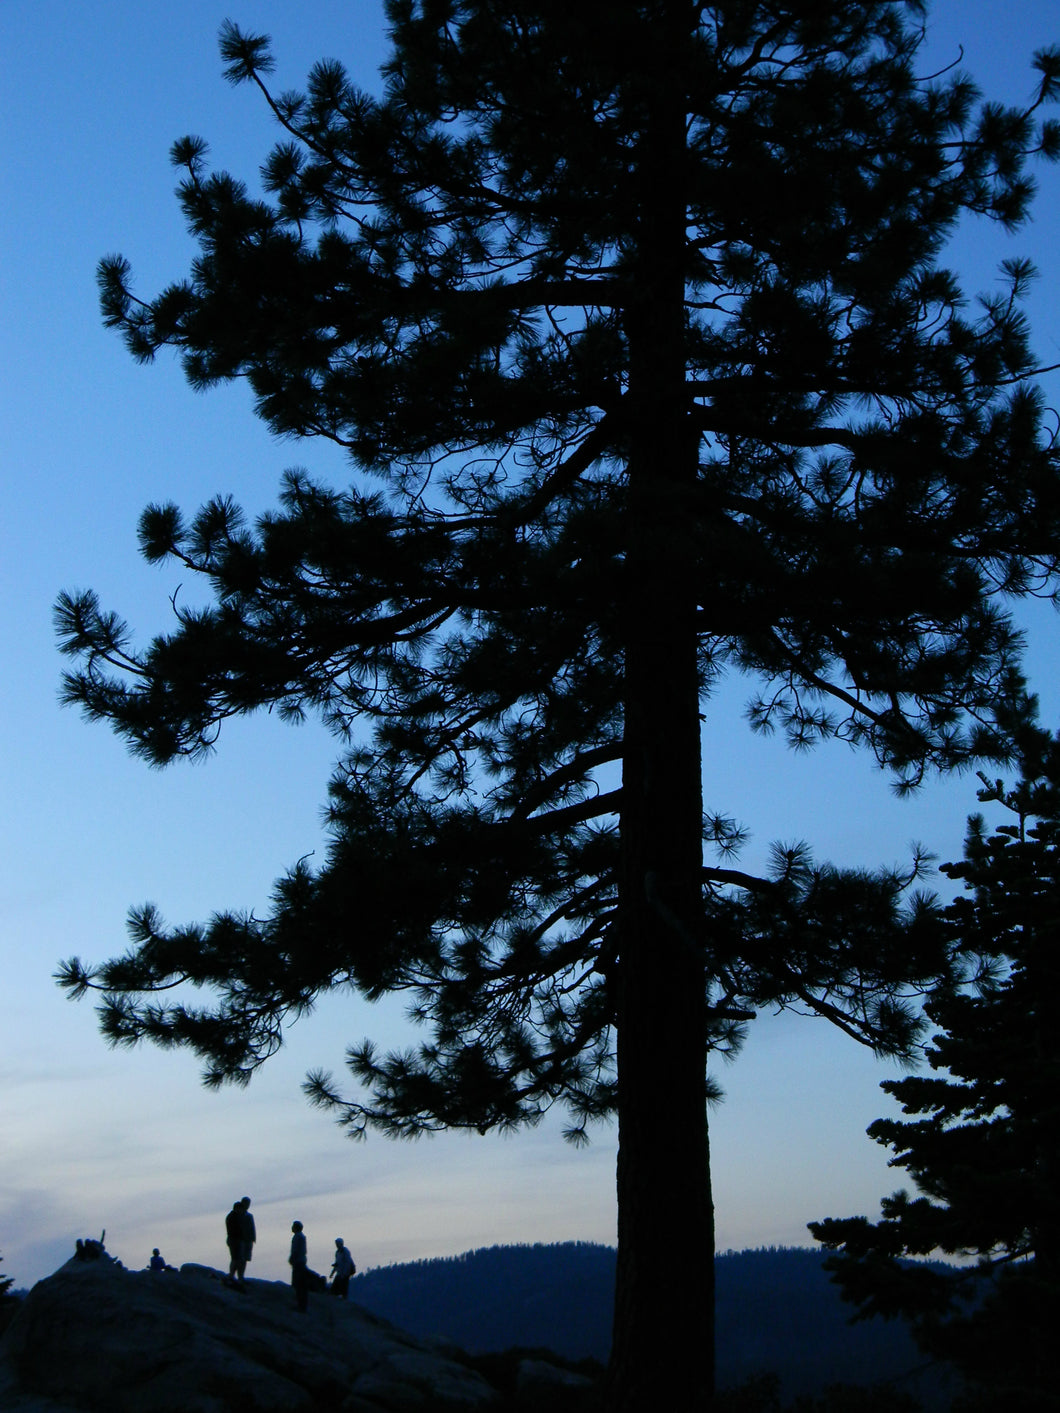 Jpeg Photo Download 233 Last Light - Sunset Tree Silhouette Yosemite National Park California